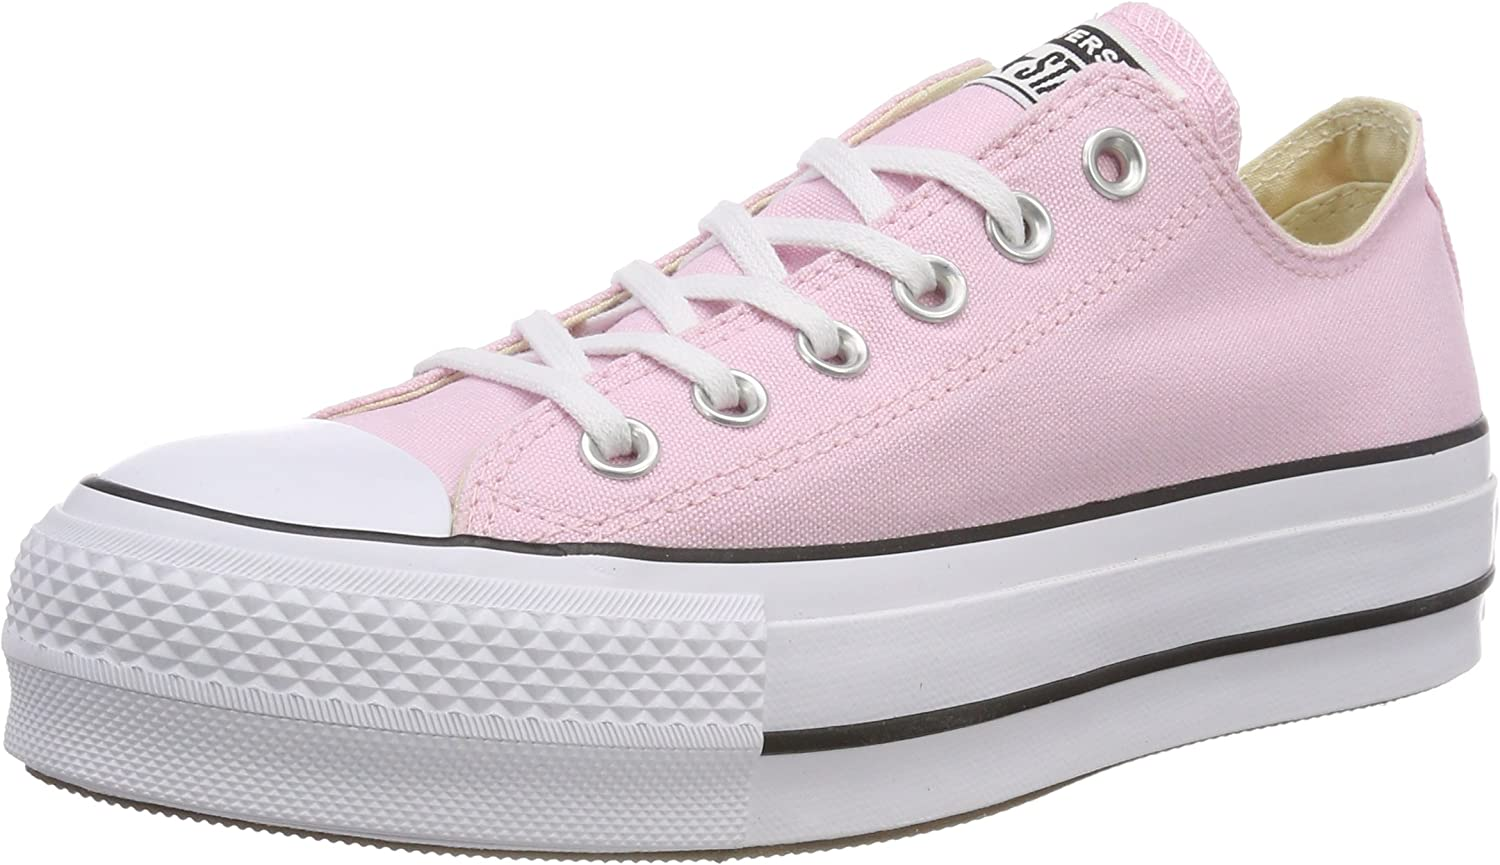 Converse Women's CTAS Lift Ox White Black Trainers, Cherry Blossom